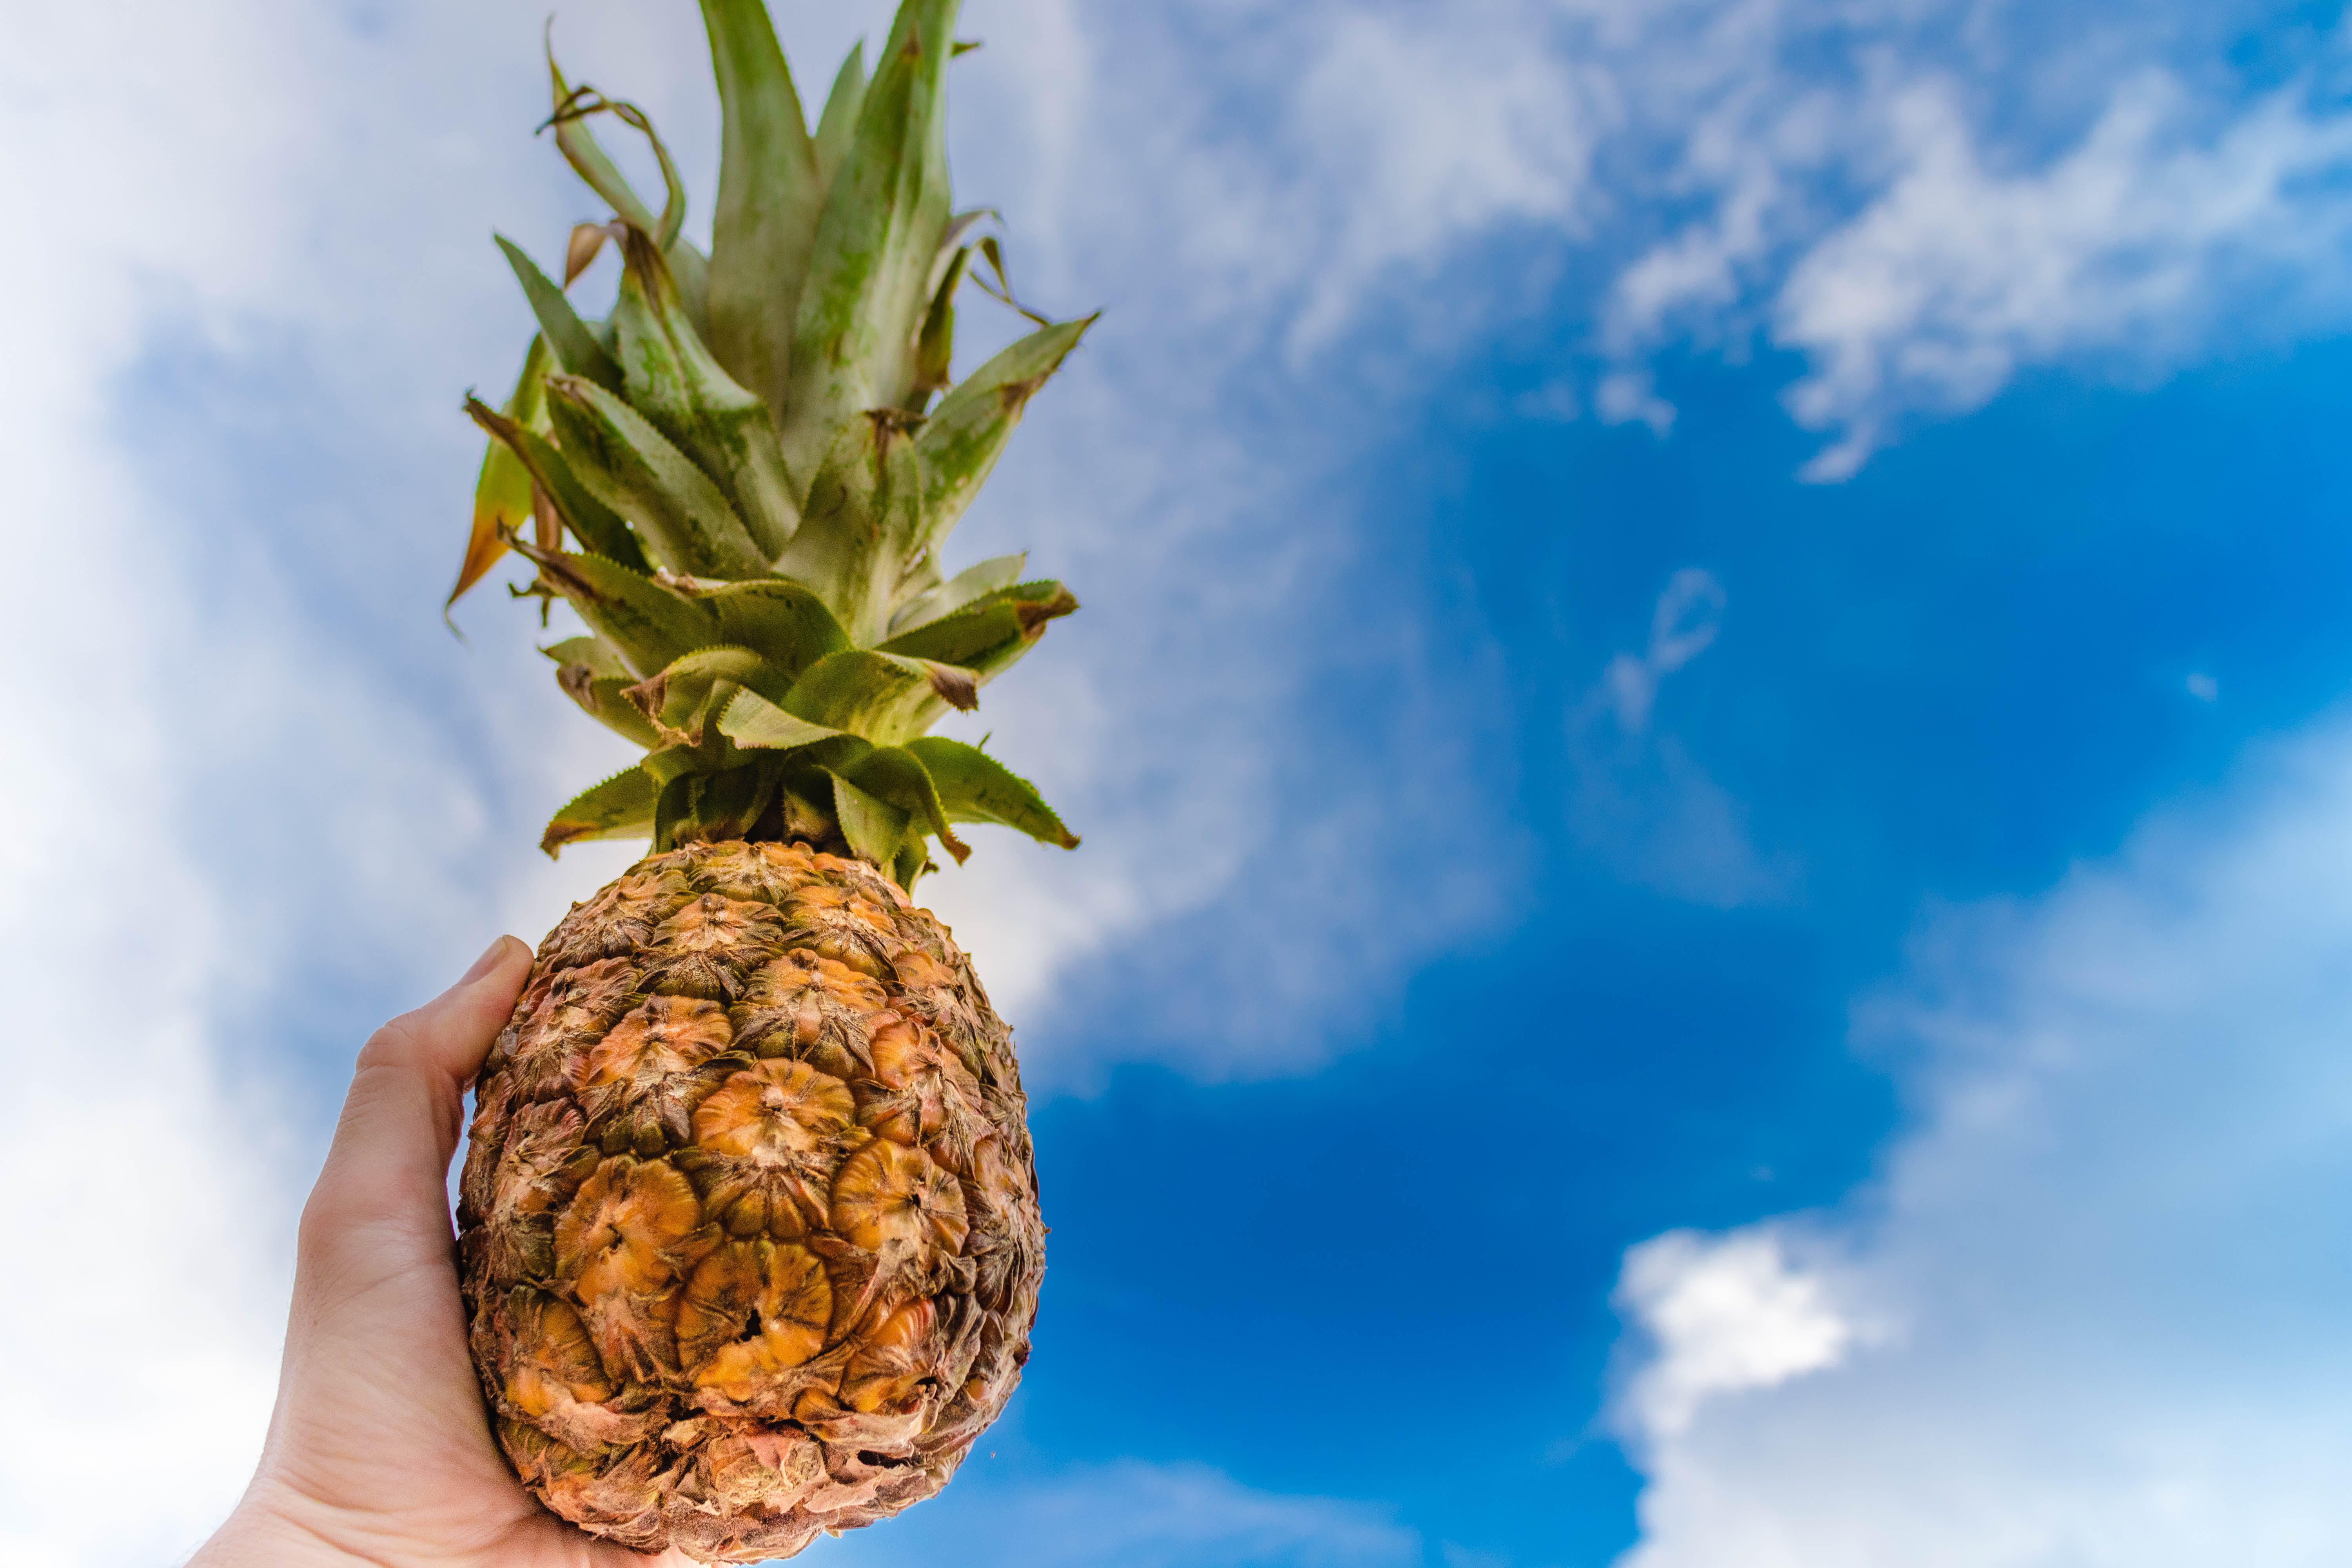 Human Left Hand Holding Pineapple While Raising on the Sky